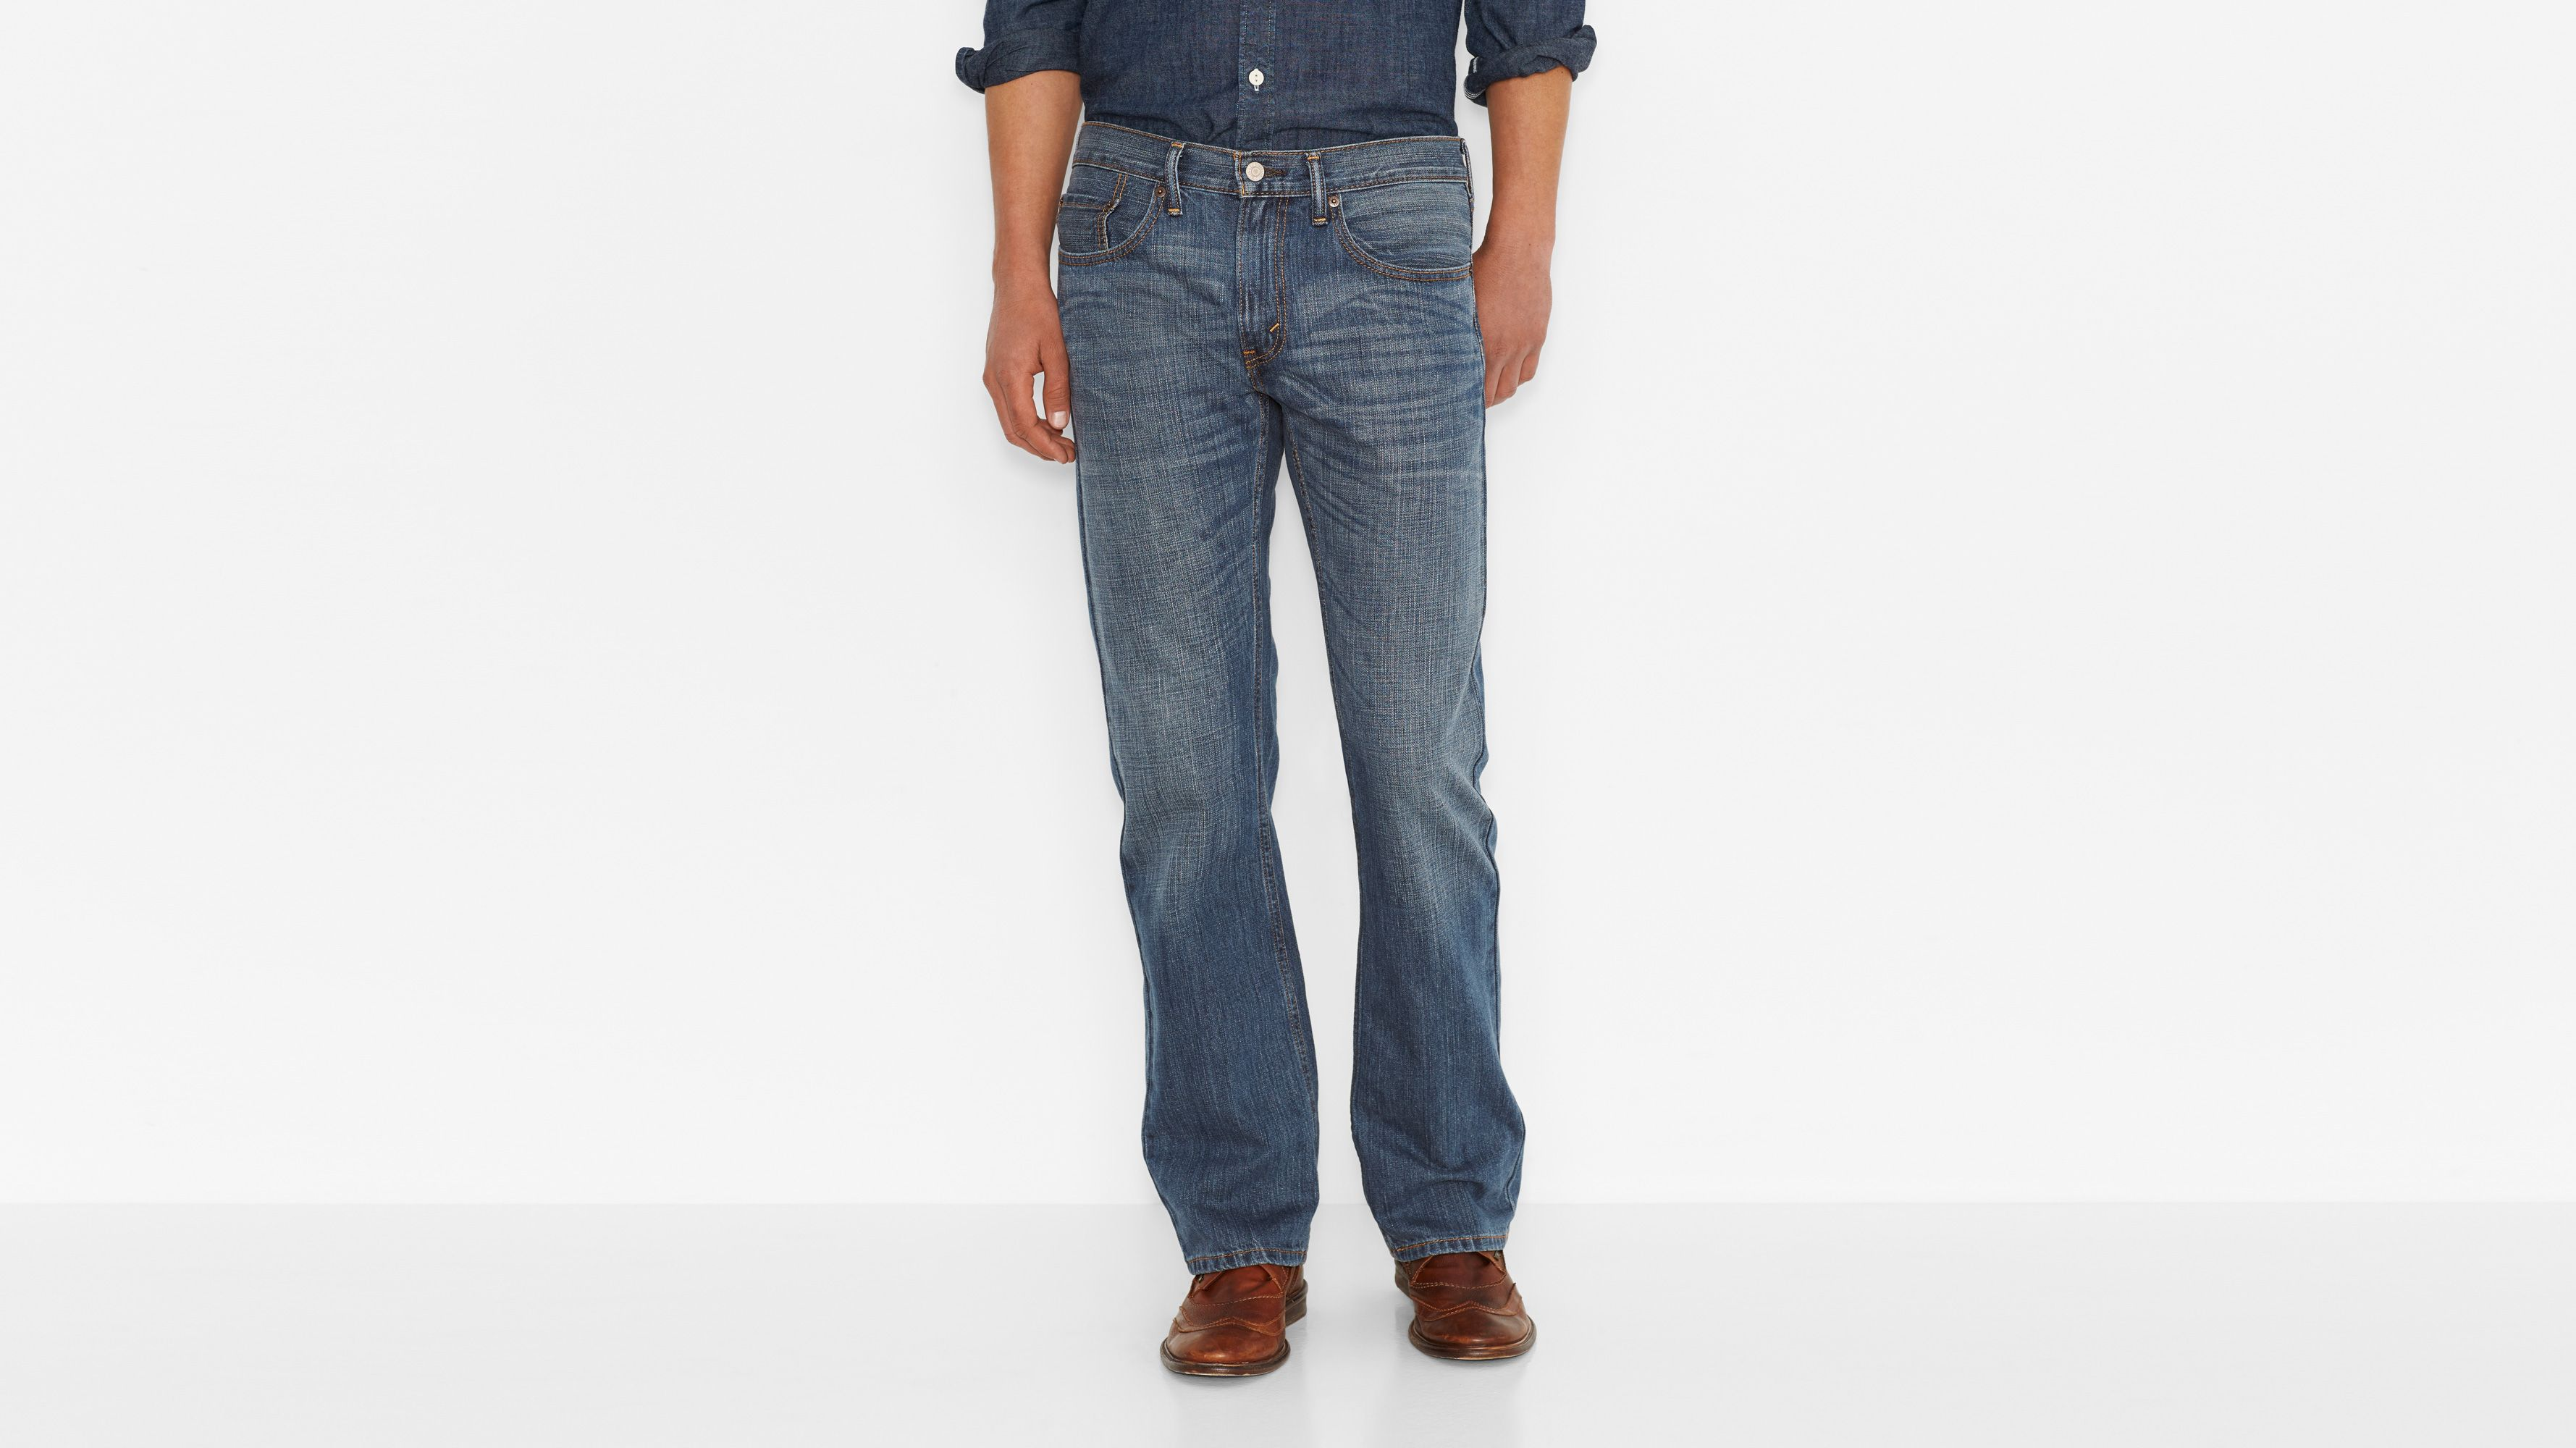 559™ Relaxed Straight Jeans - Indie Blue